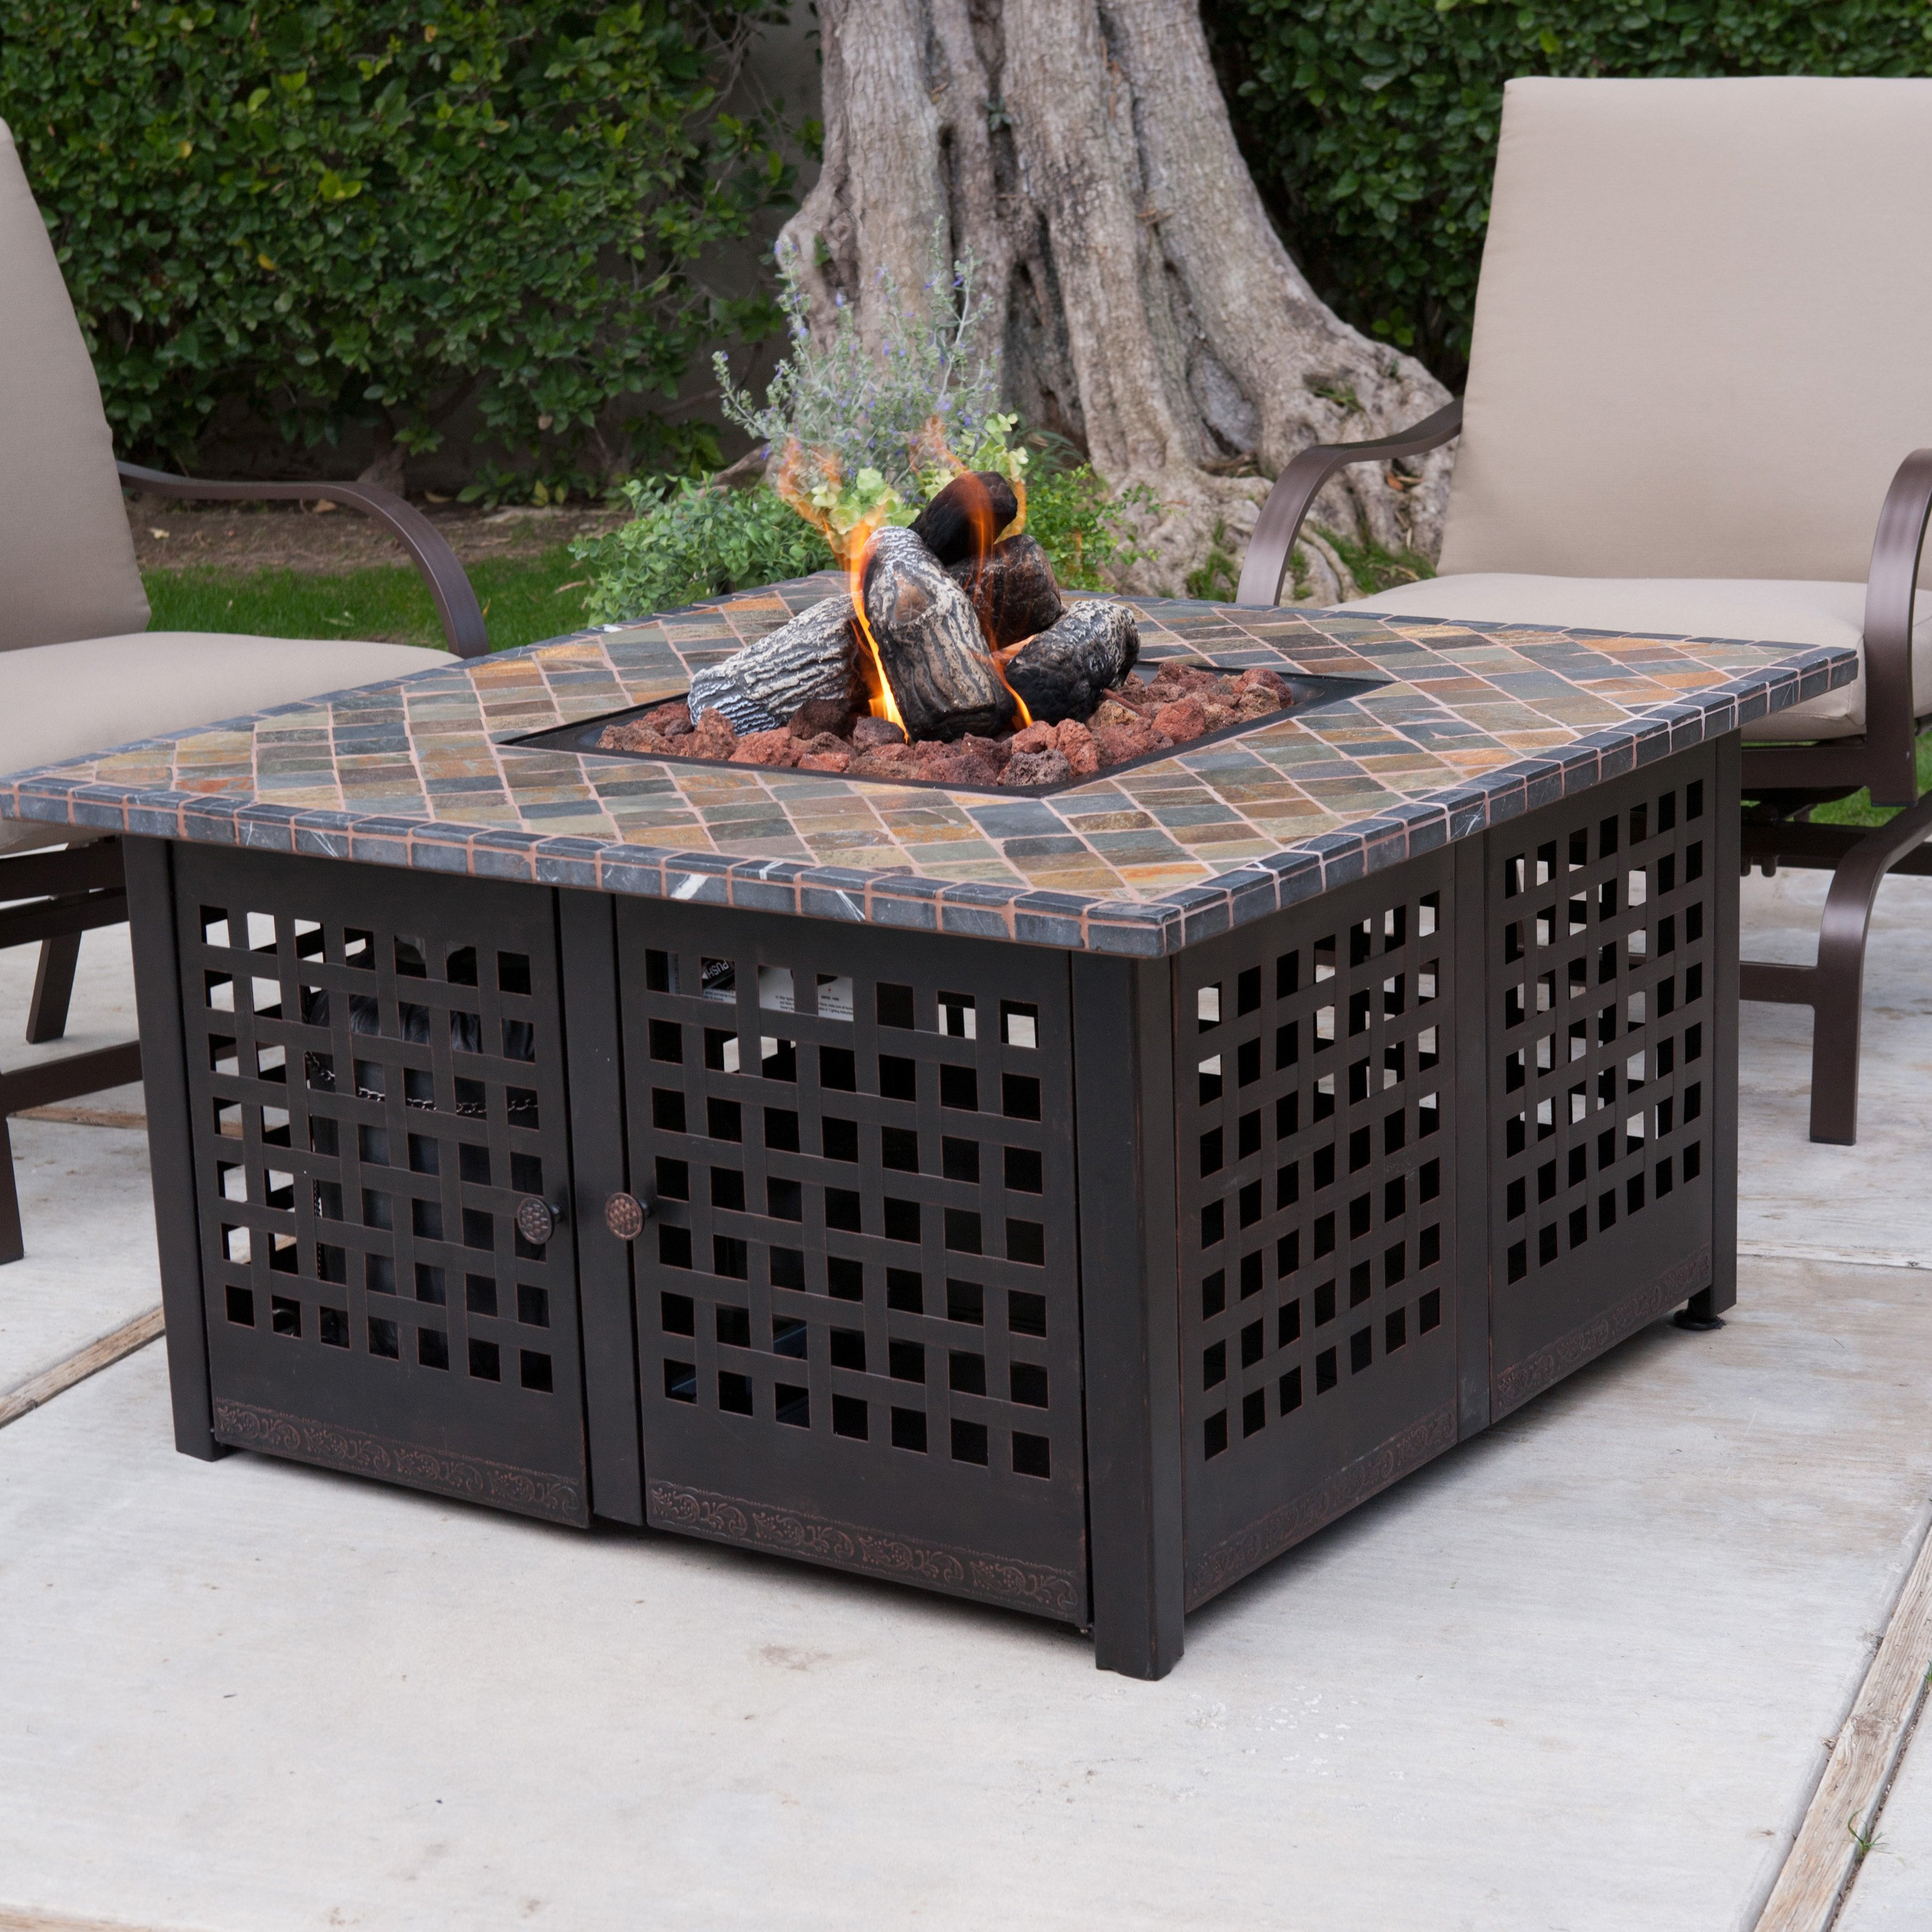 exterior inspiring patio decor ideas with fire pit cozy concrete flooring and wrought iron furniture beige cushions for exciting design plus also outdoor gas metal accent table